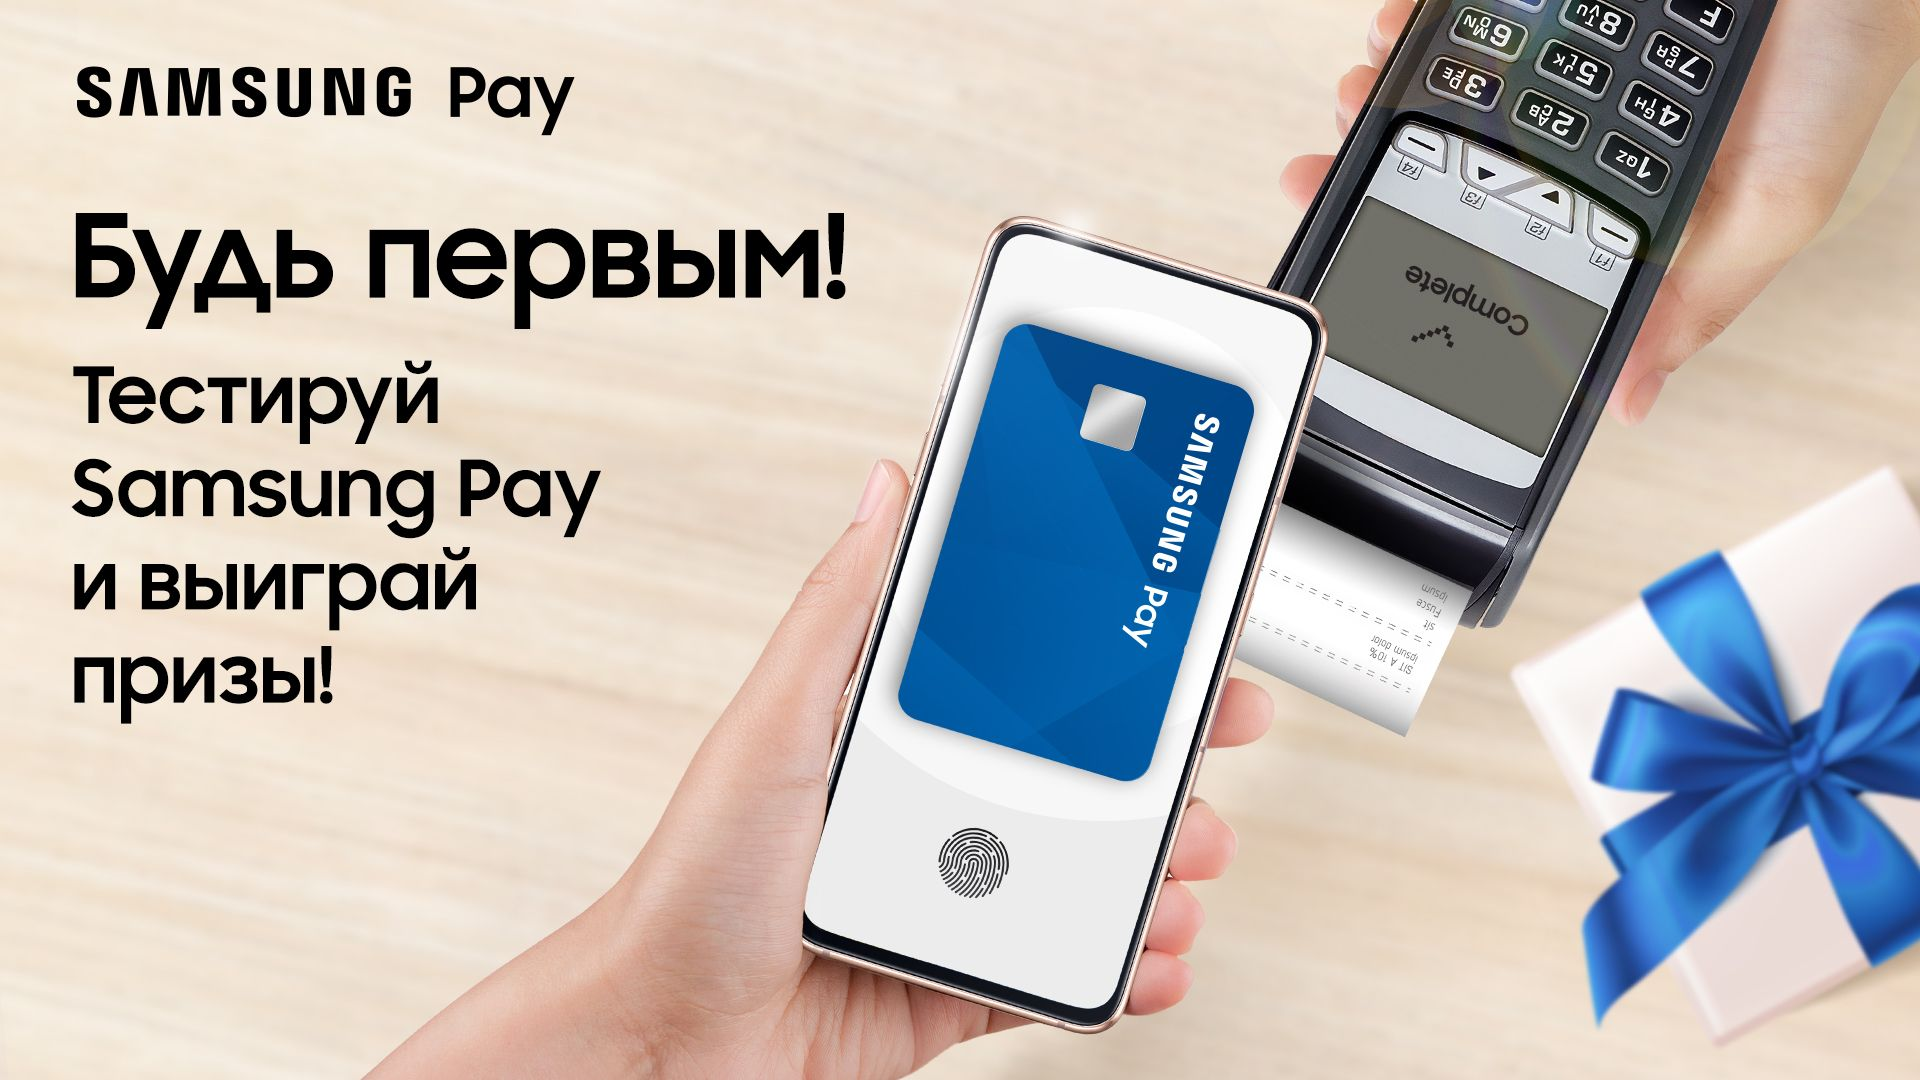 Samsung pay казахстане